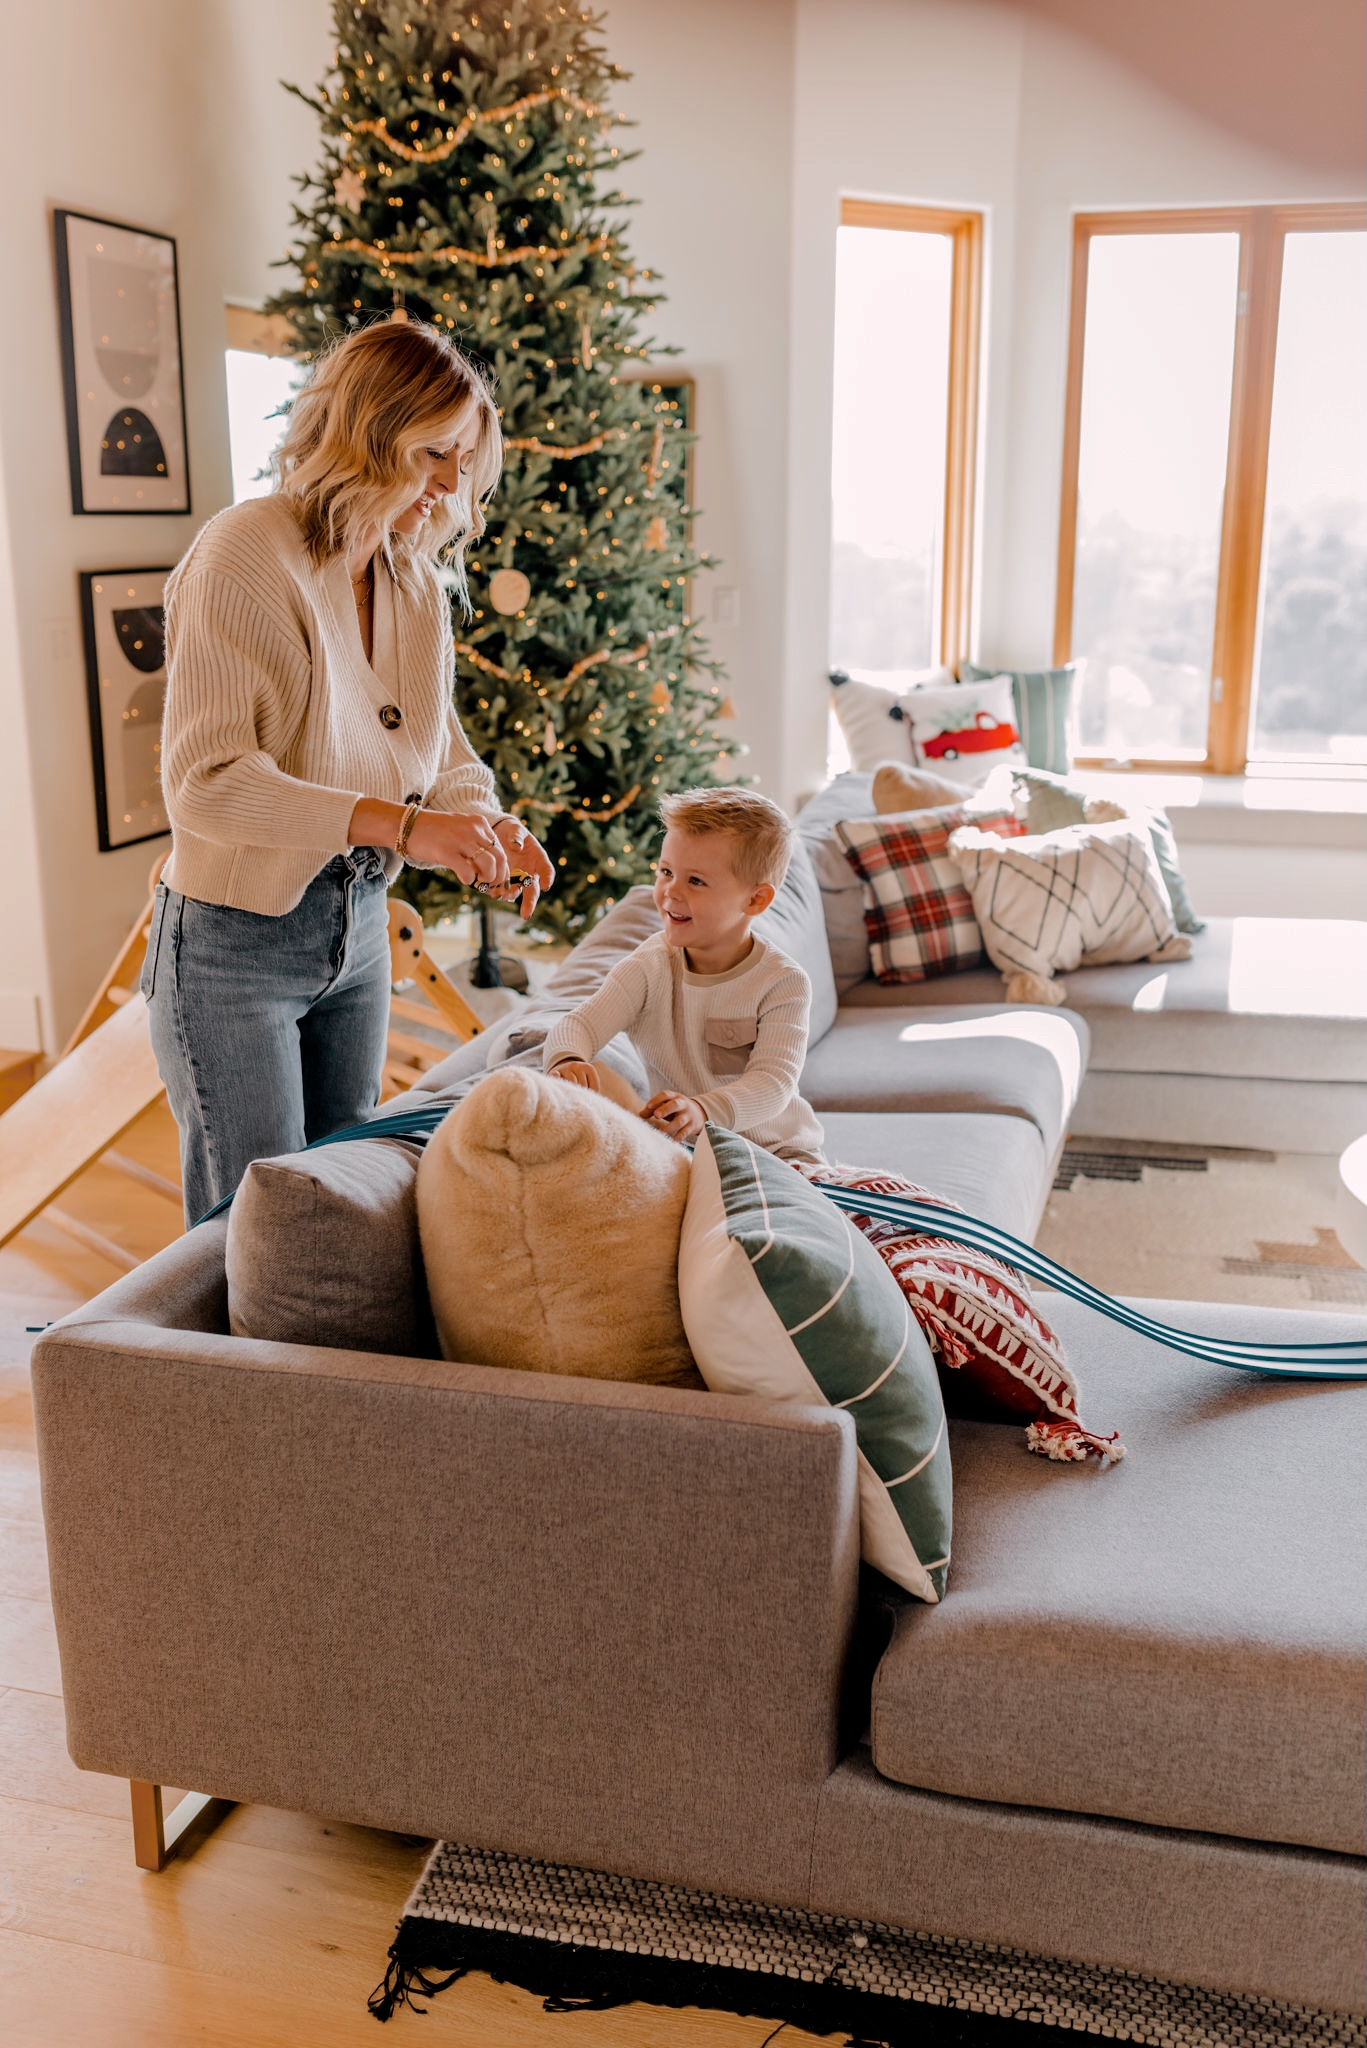 24 PRESCHOOLER GIFTS YOUR 3 TO 5 YEAR OLDS WILL LOVE featured by top San Diego lifestyle blogger, Navy Grace |Preschooler Gifts by popular San Diego lifestyle blog, Navy Grace: image of a mom and young boy playing together with cars.